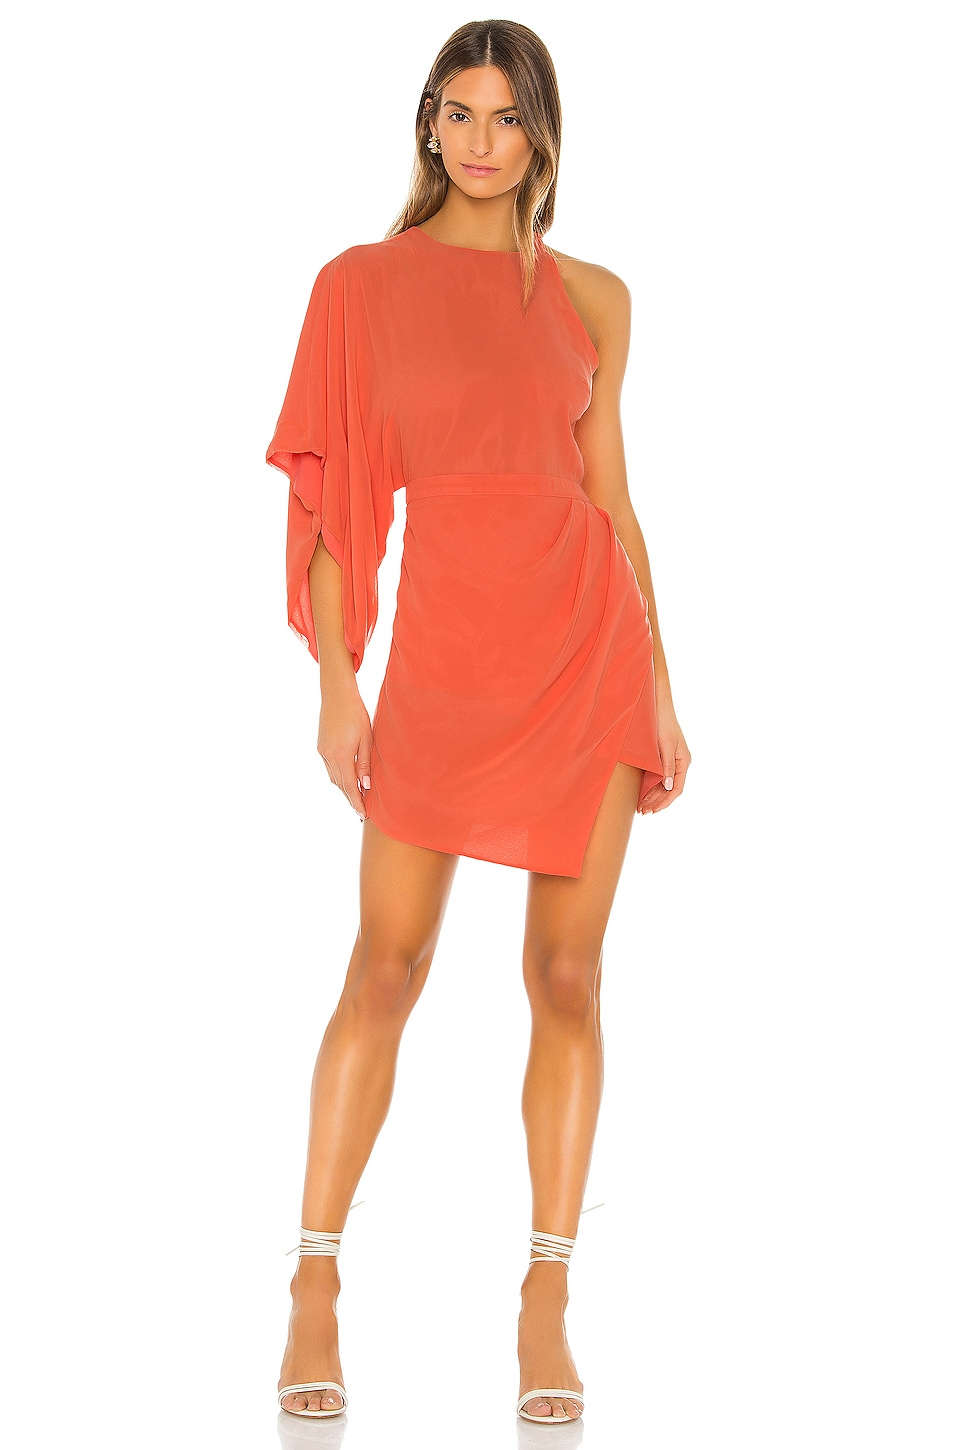 Michael Costello x REVOLVE Lexa Dress in Coral